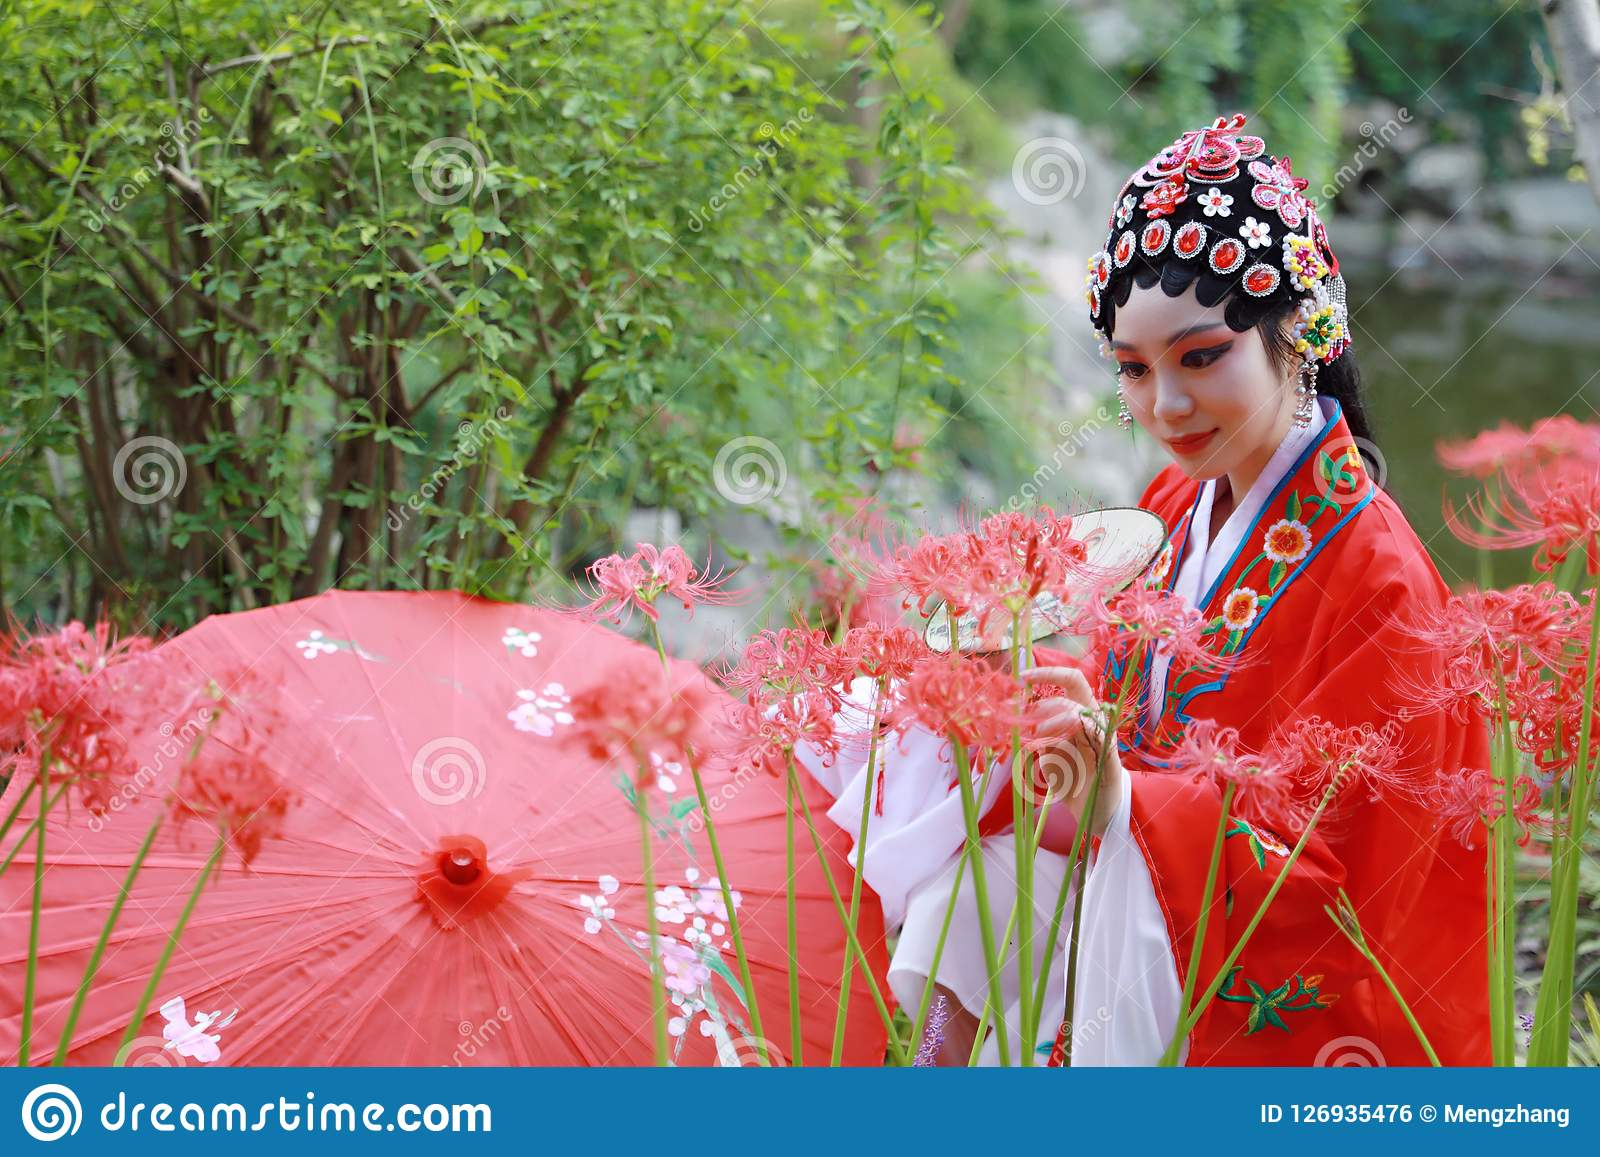 Aisa Chinese woman Peking Beijing Opera Costumes Pavilion garden China traditional role drama play bride hold red Umbrella